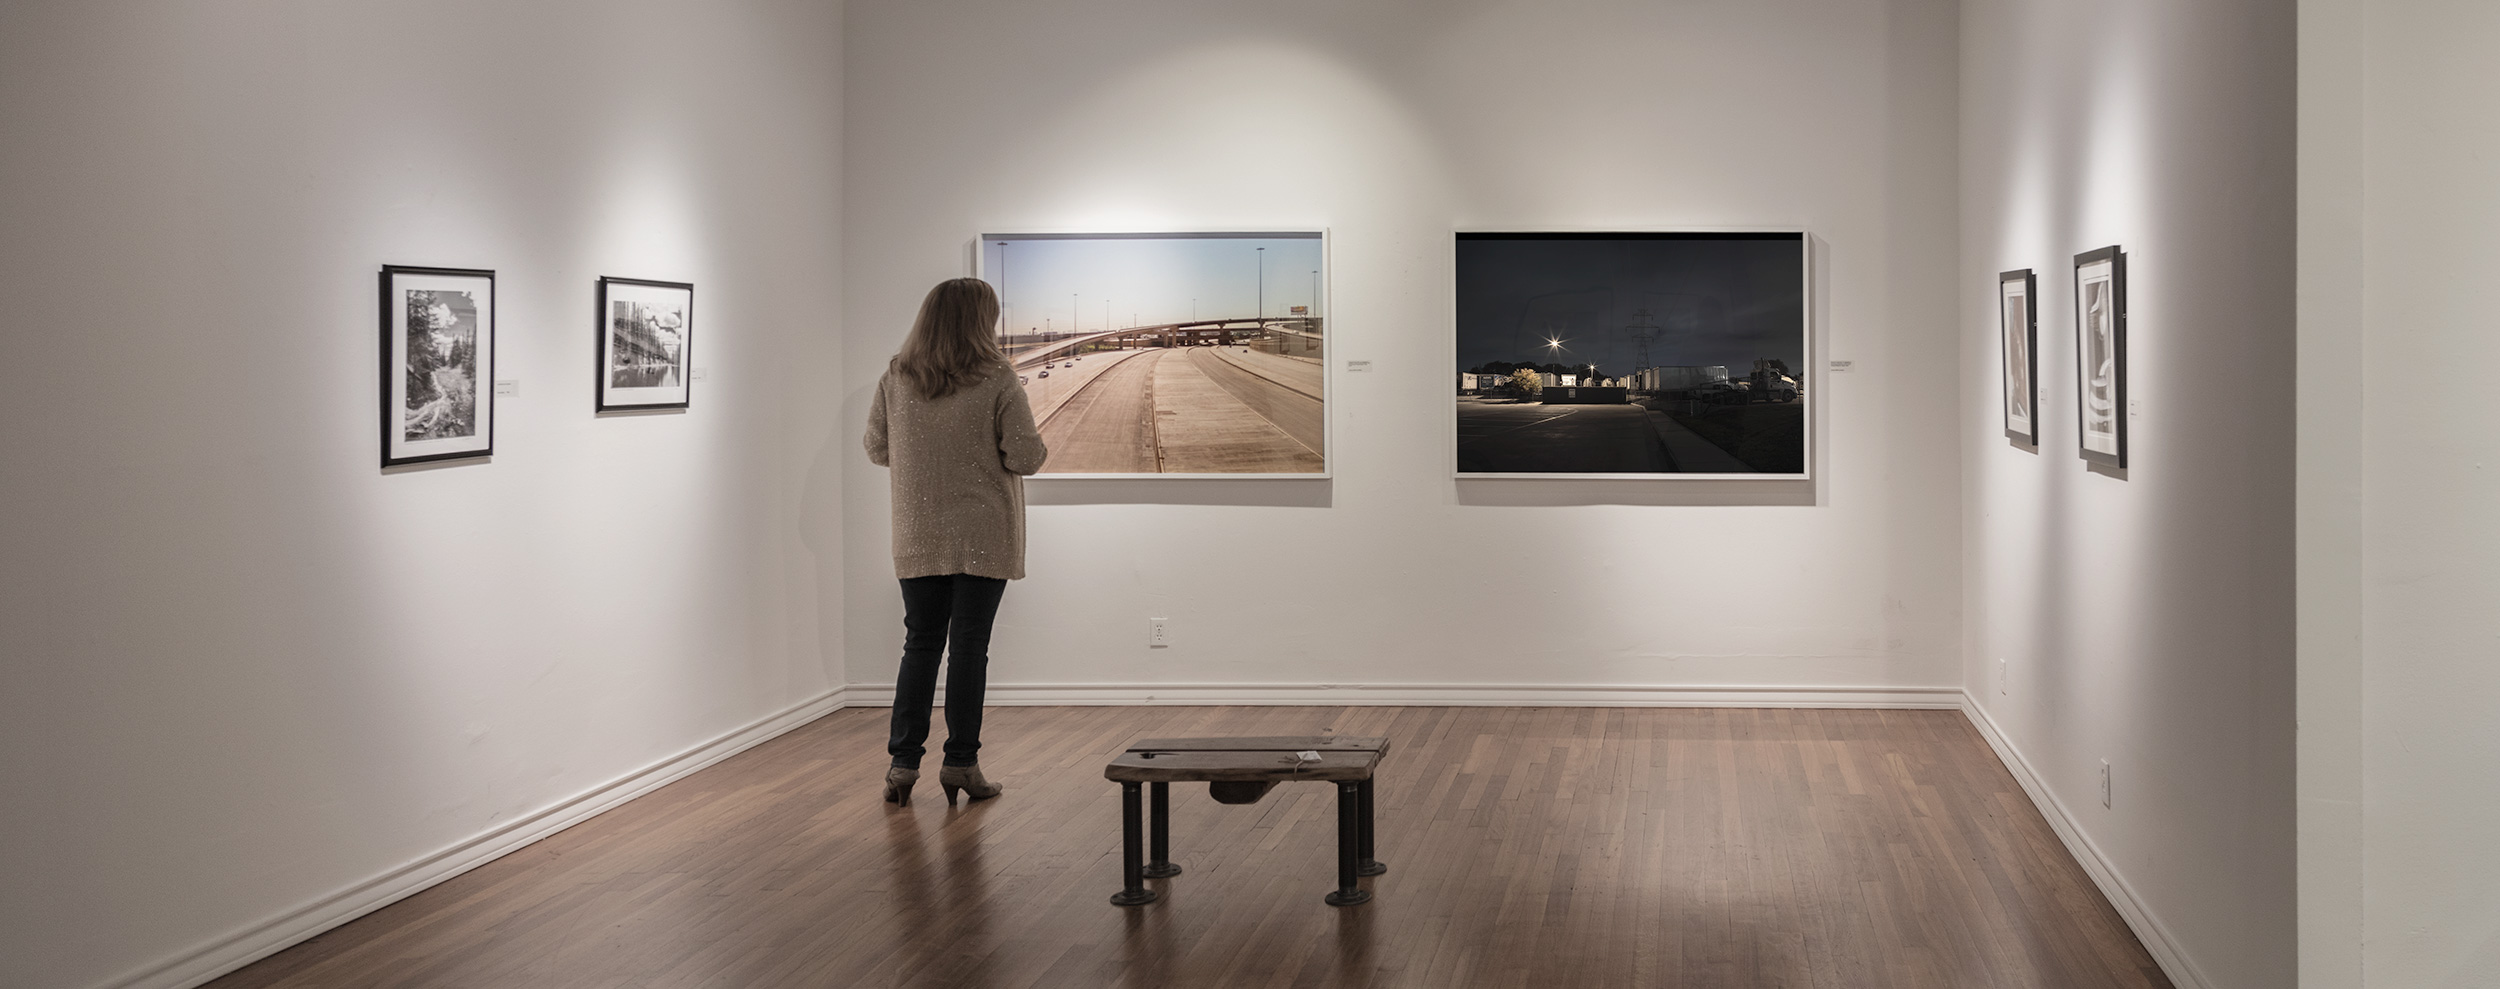 Frack-tured was a part of  Perspectives  at the Longview Museum of Fine Arts  in Longview, Texas at the beginning of 2016.